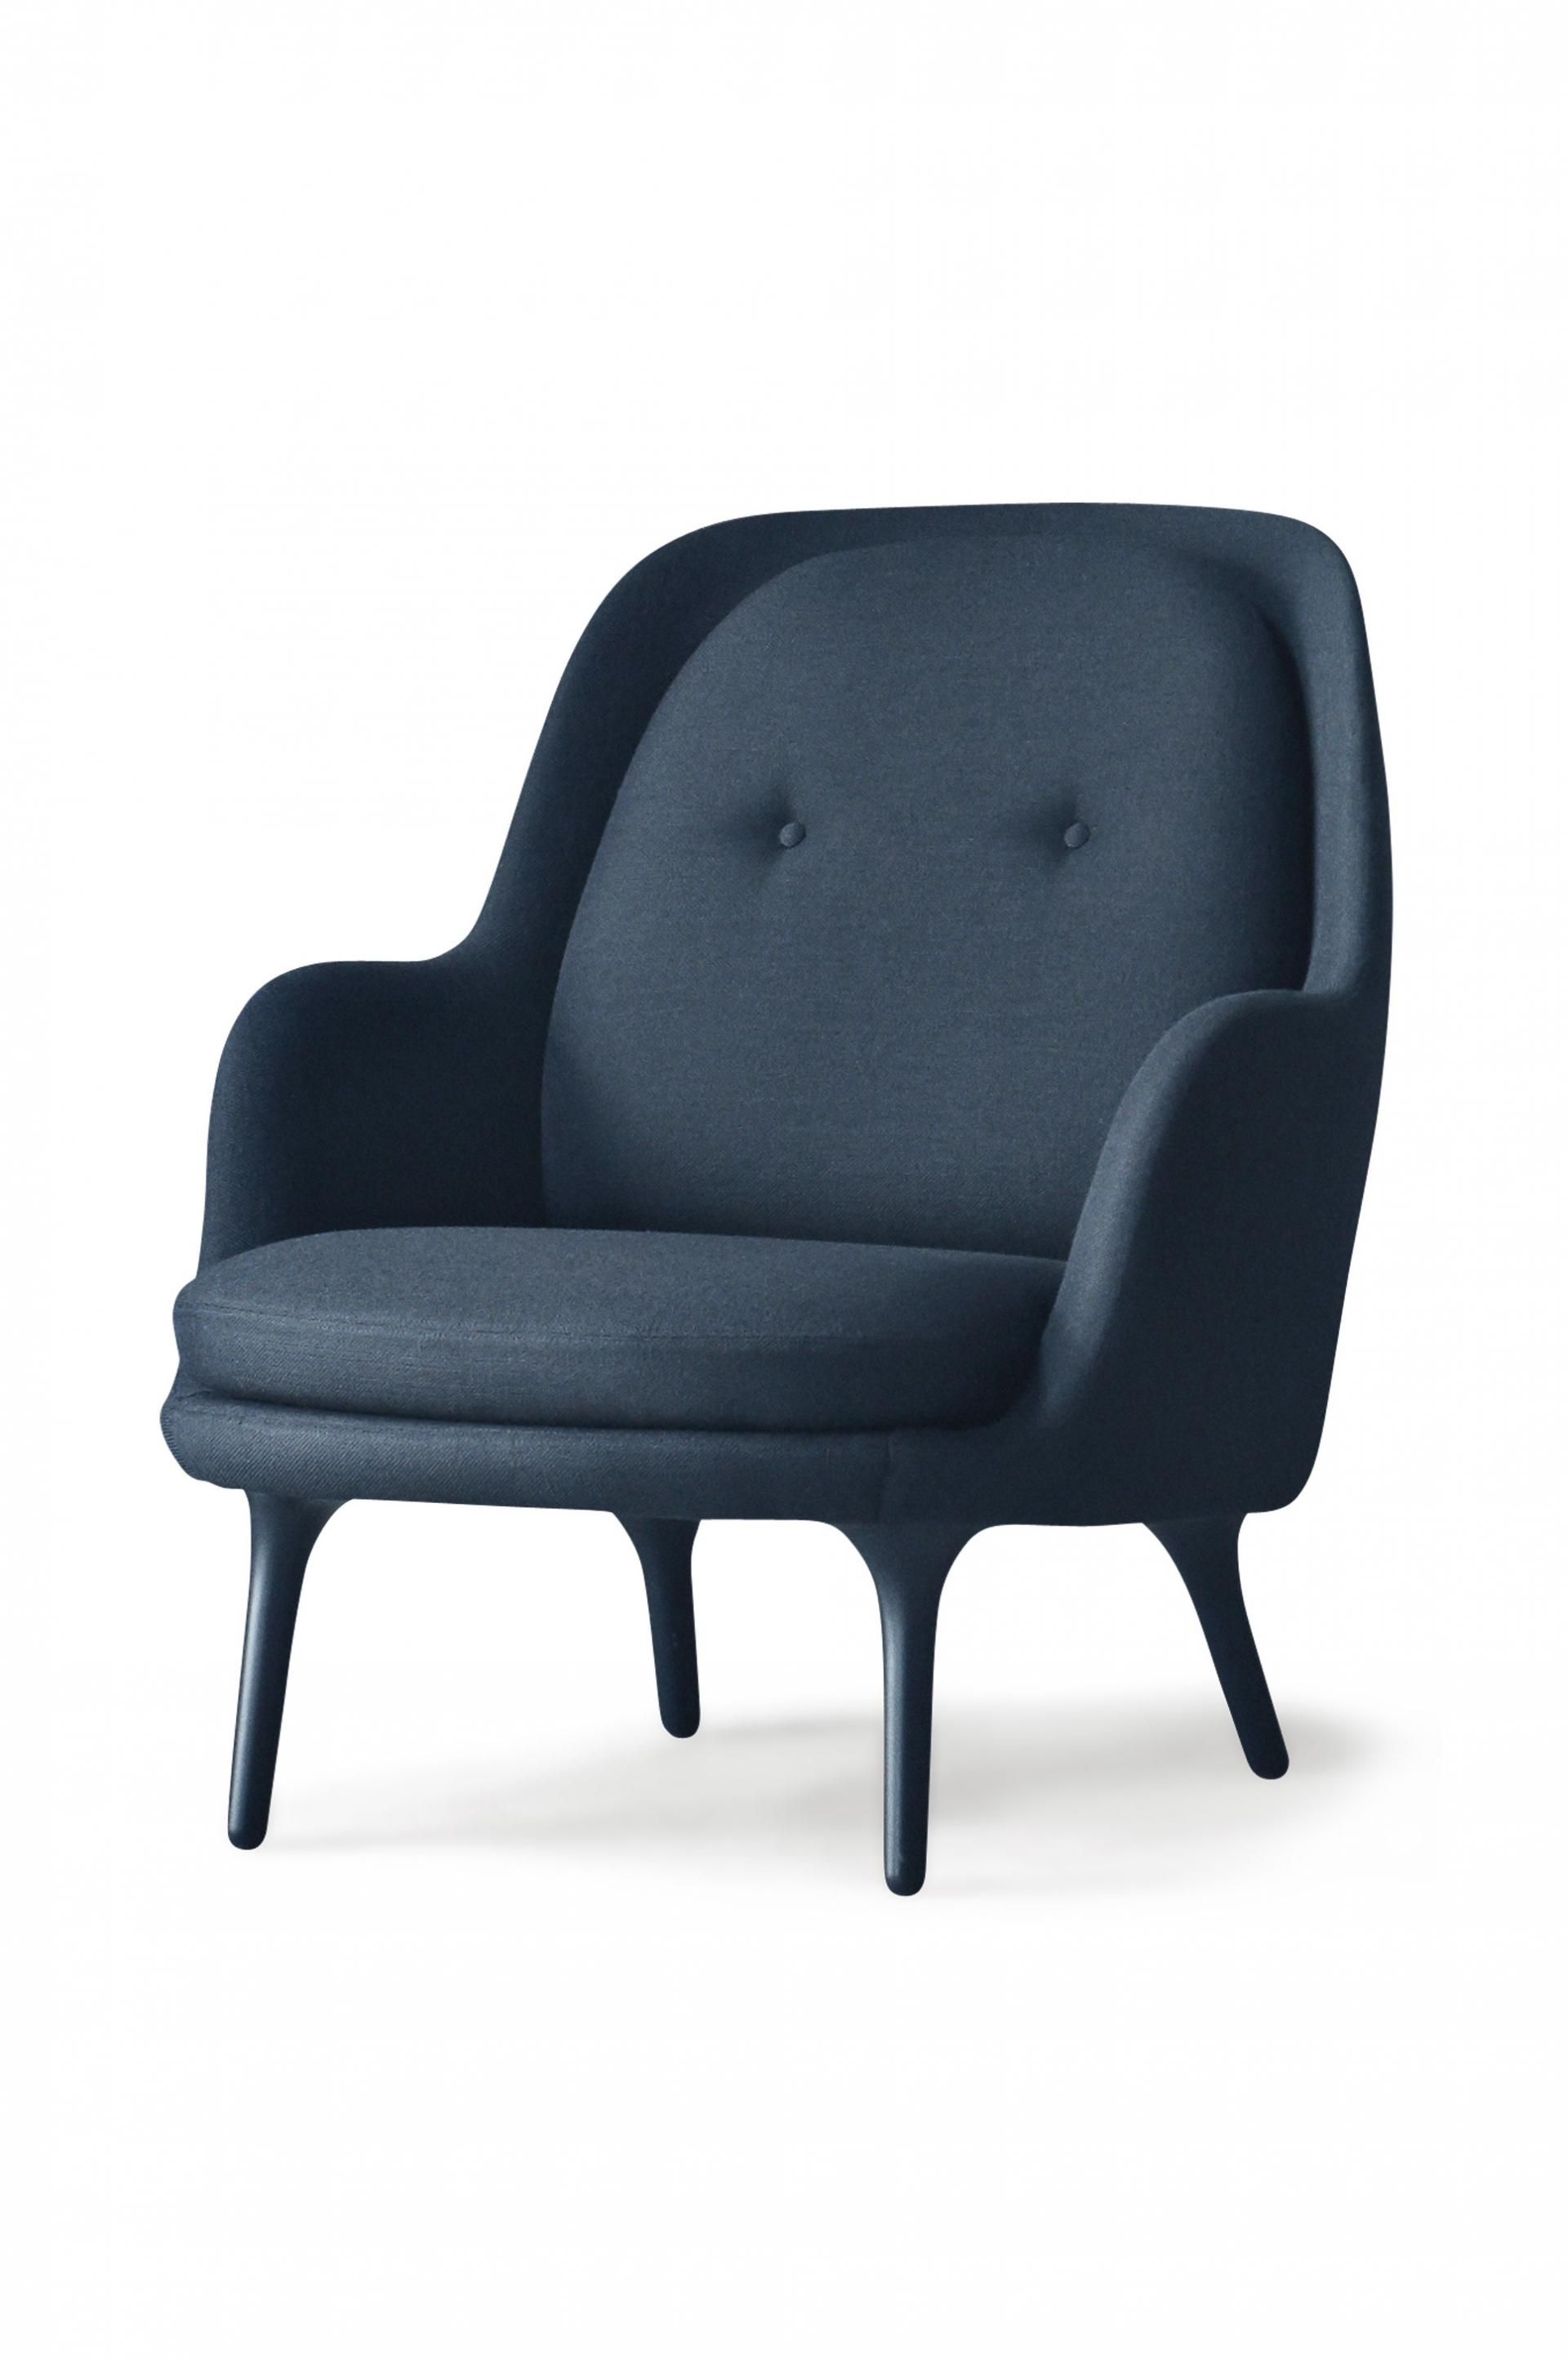 fritz hansen fri armchair product furnishings. Black Bedroom Furniture Sets. Home Design Ideas